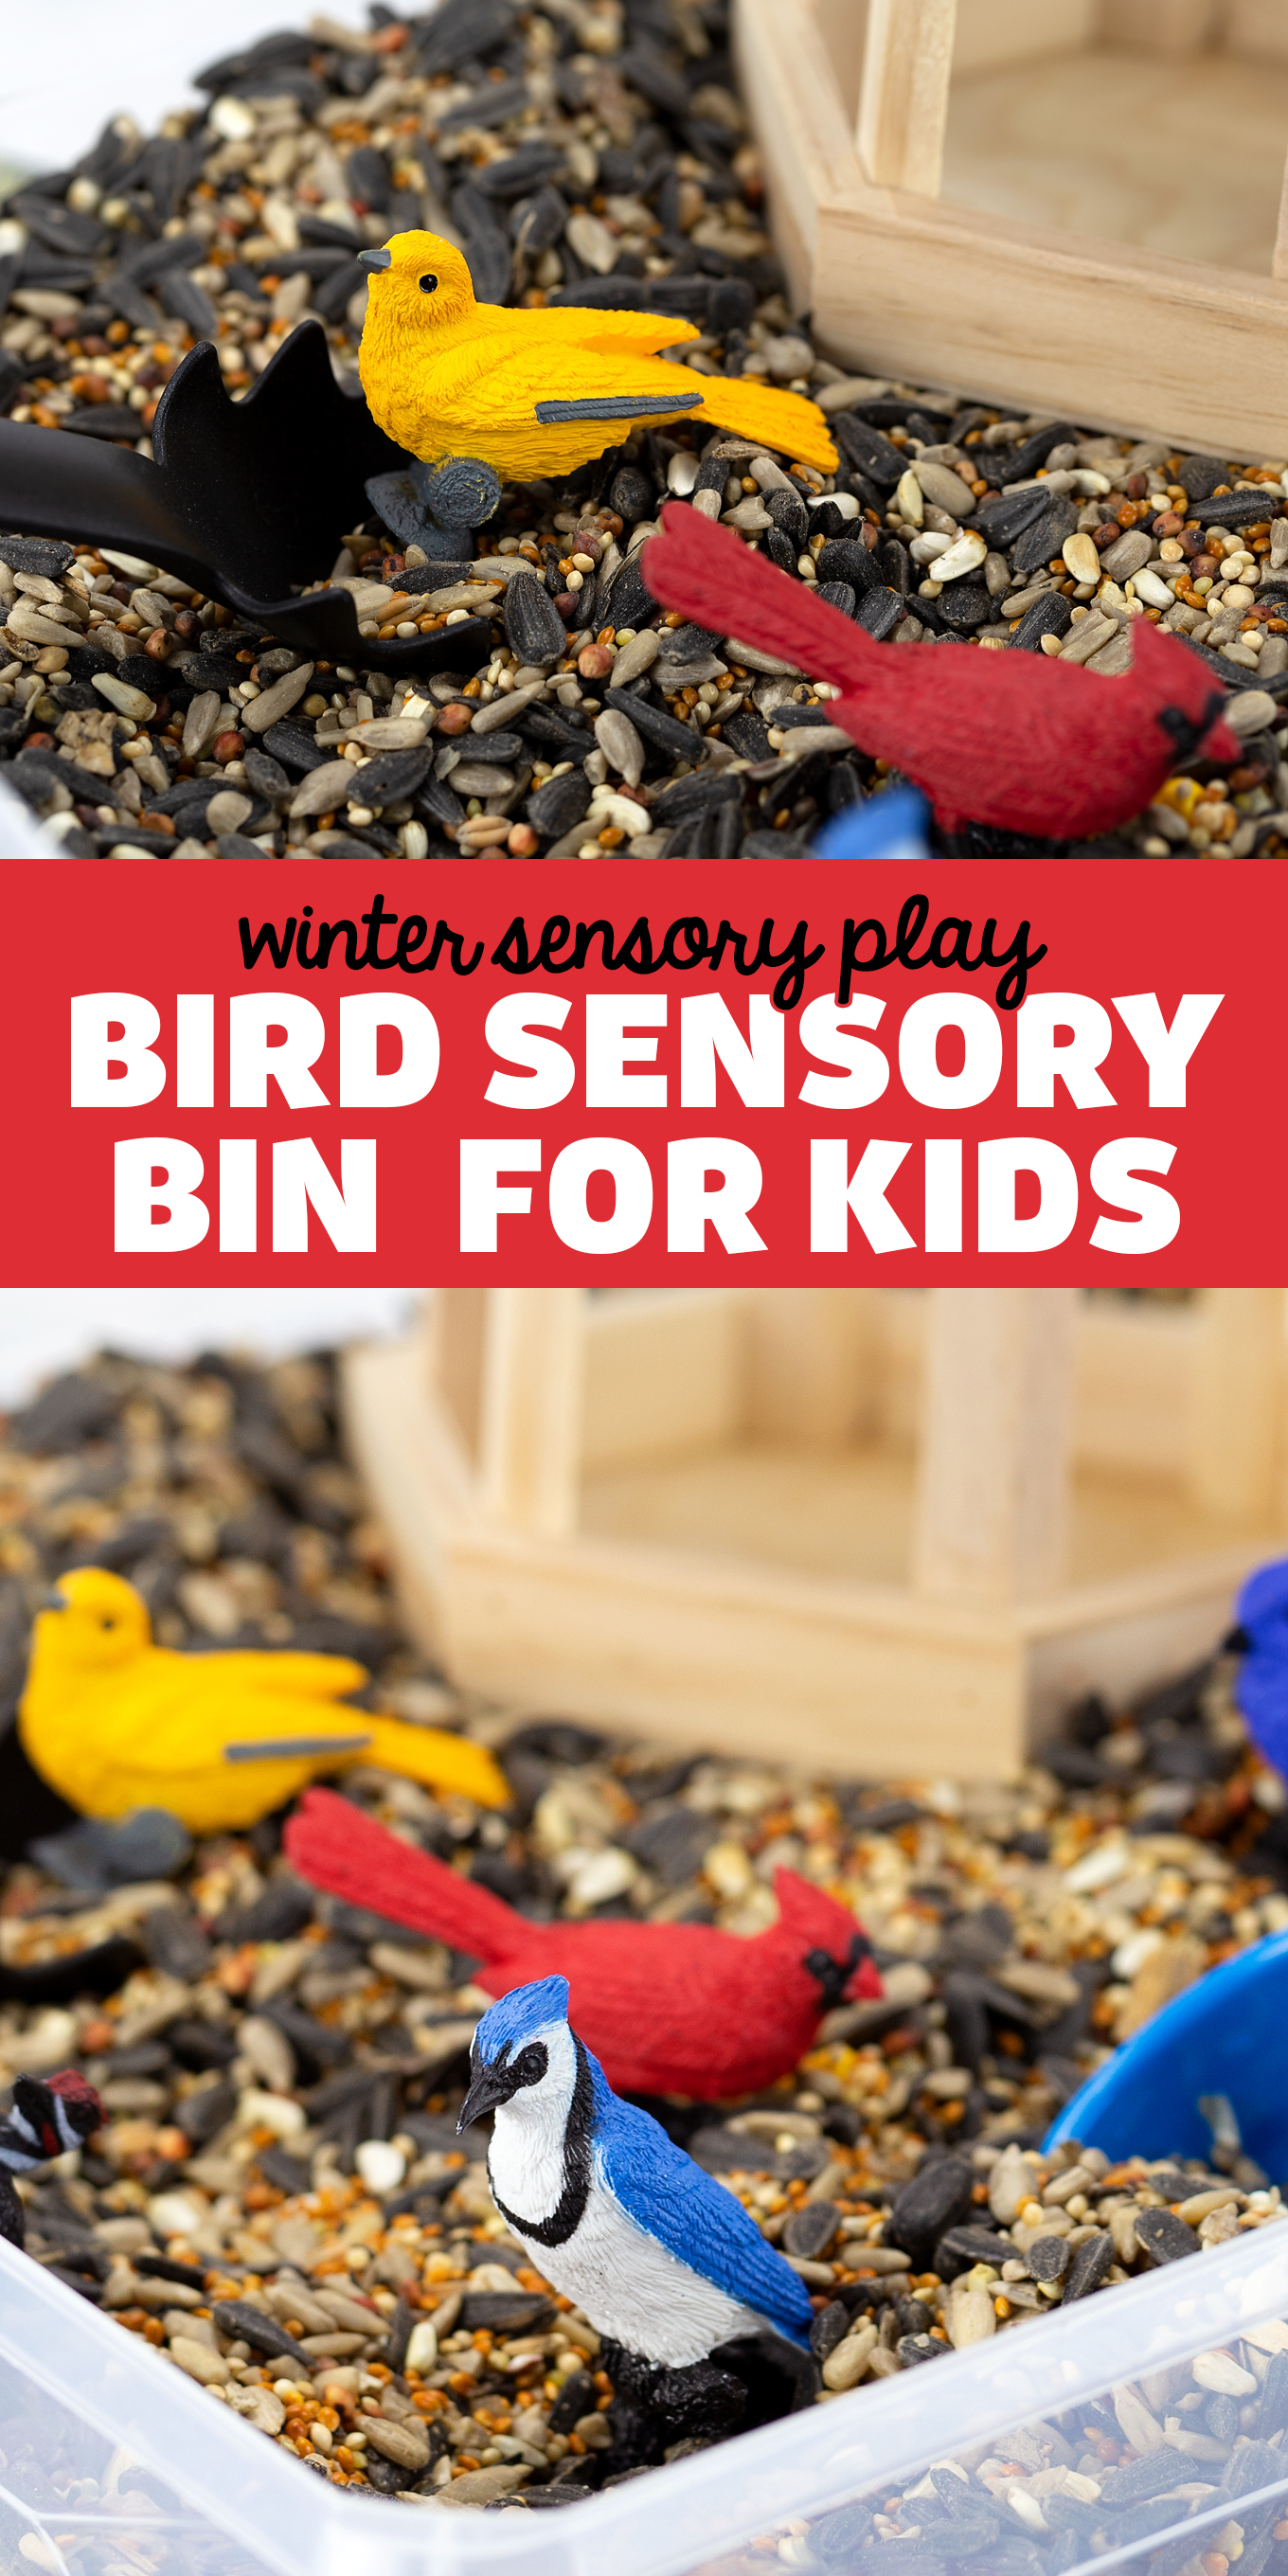 Learn about birds and invite sensory exploration with this fun Bird Sensory Bin for kids. Pair it with bird-themed preschool activities, books, and crafts. Follow us on Pinterest for more sensory bin ideas for kids! via @firefliesandmudpies